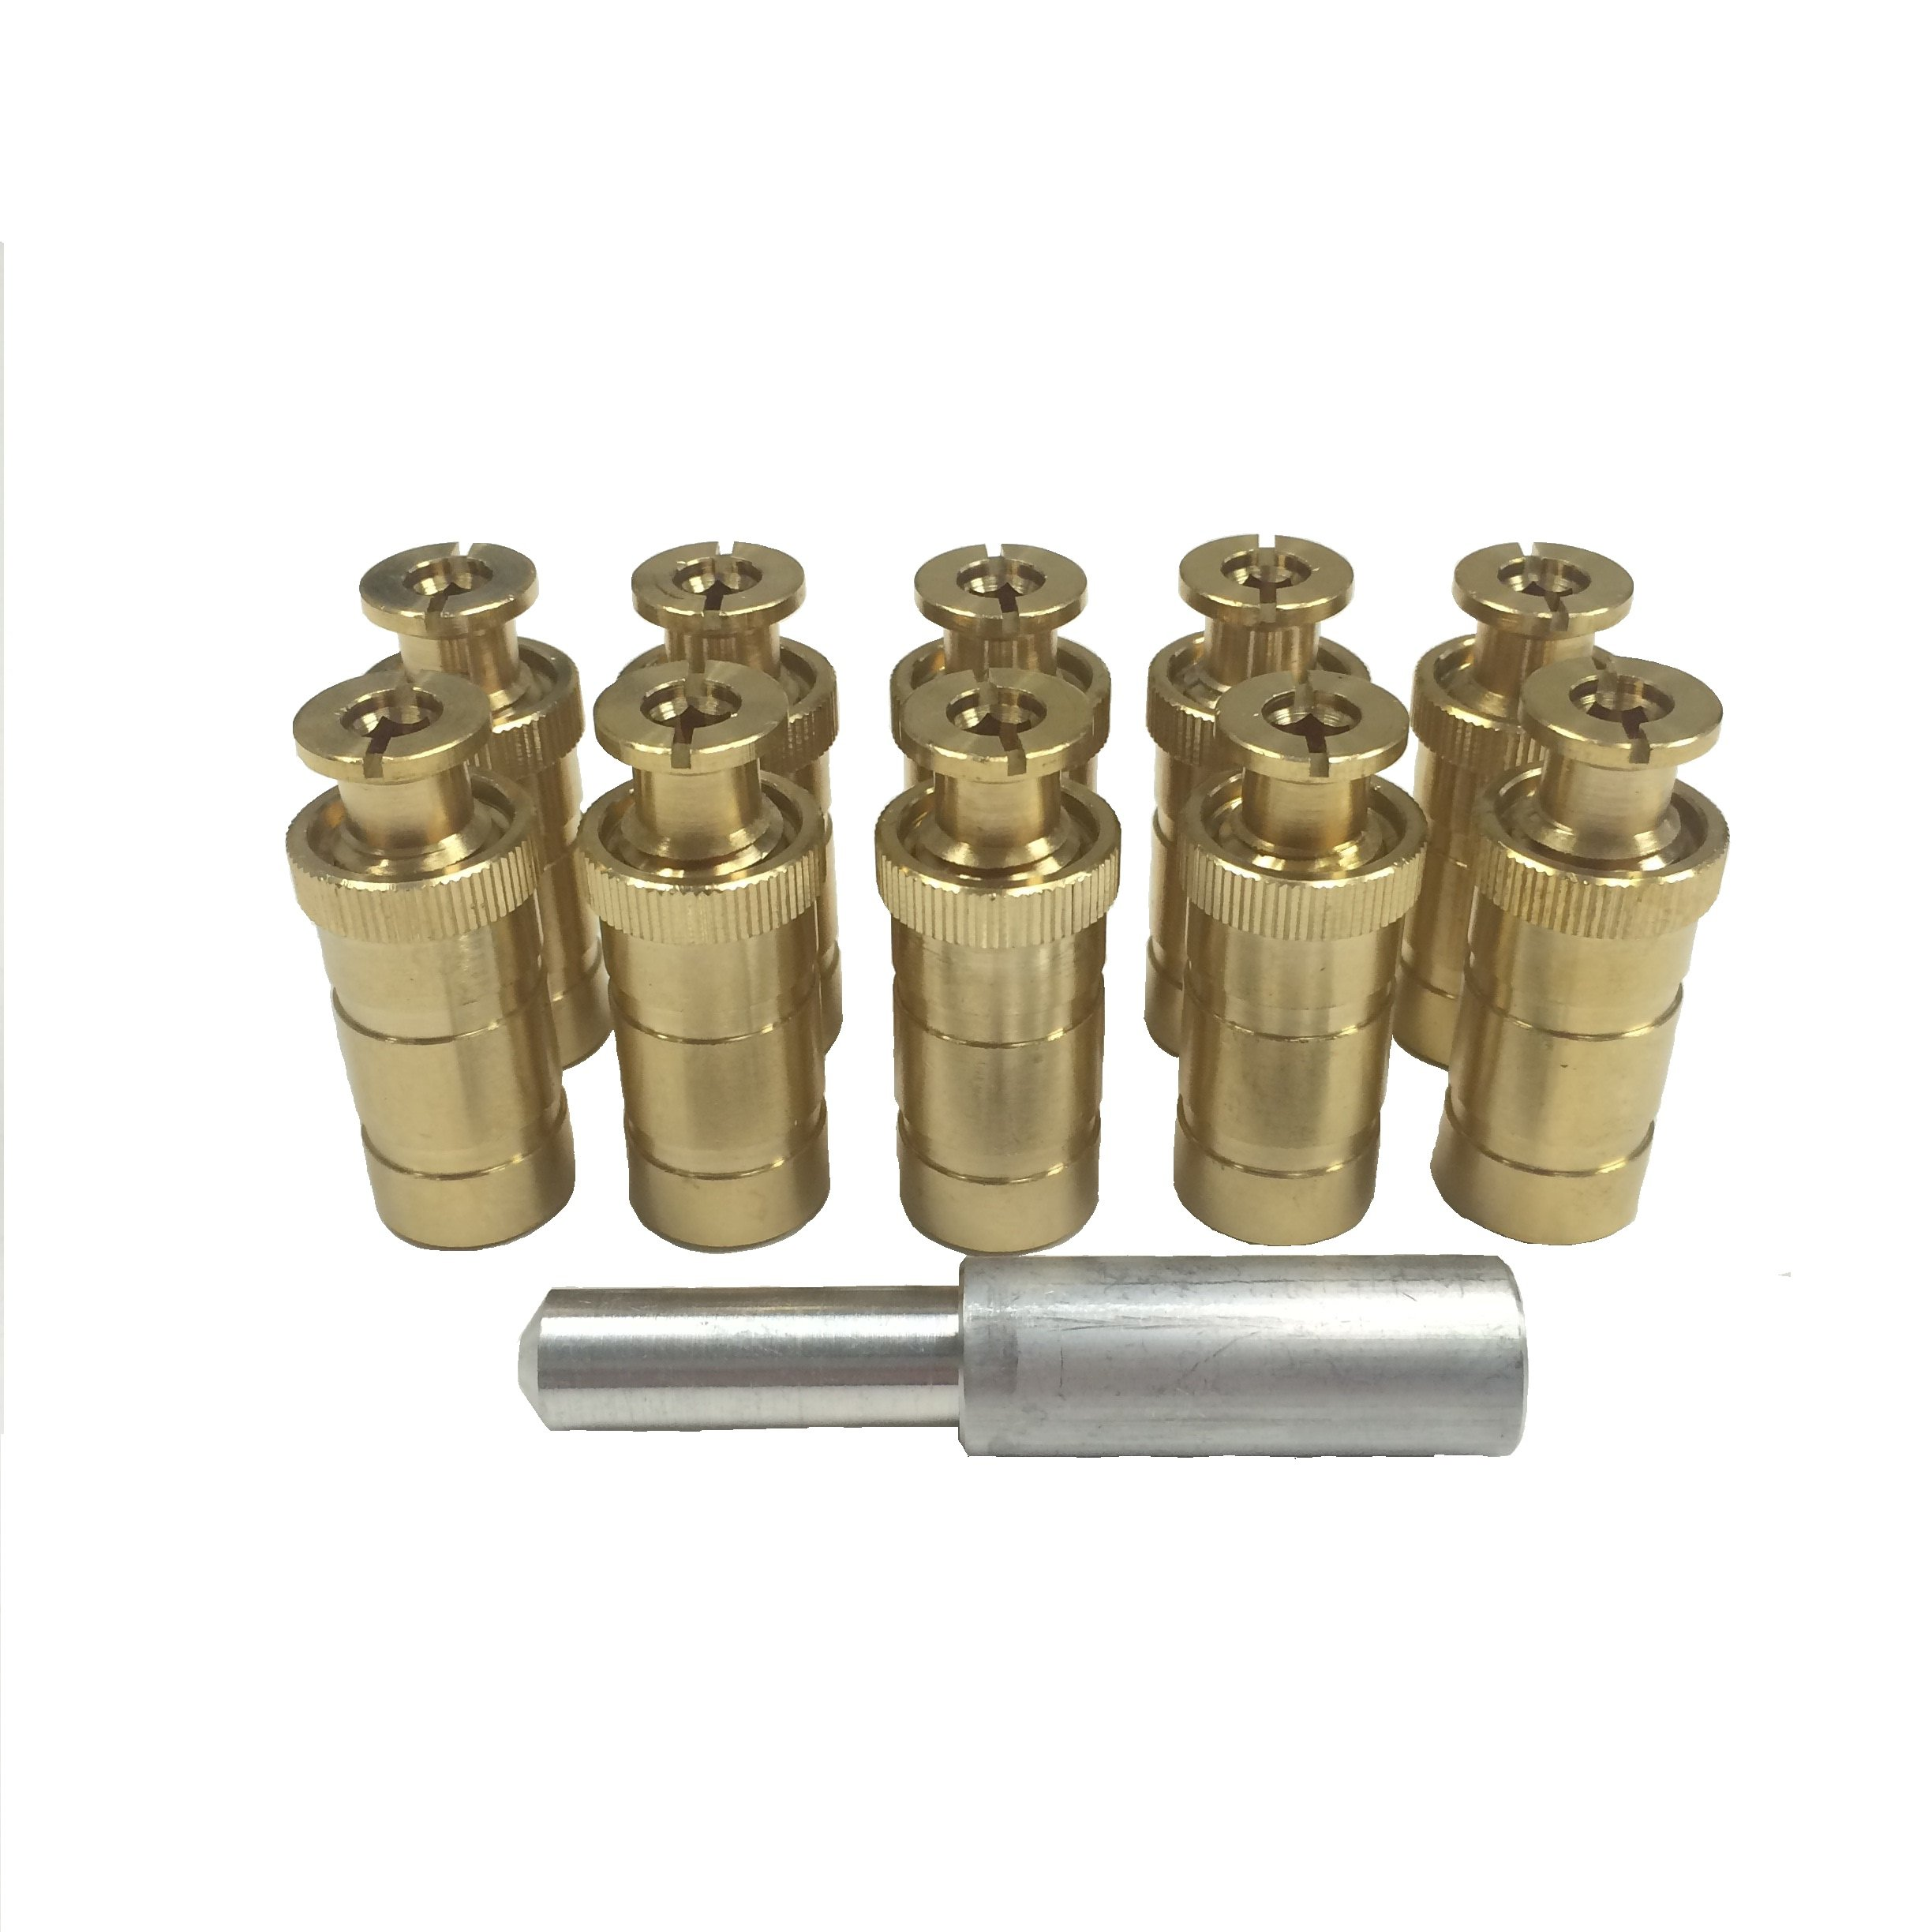 Pack of 10 Brass Anchors and Tamping Tool for Safety Covers